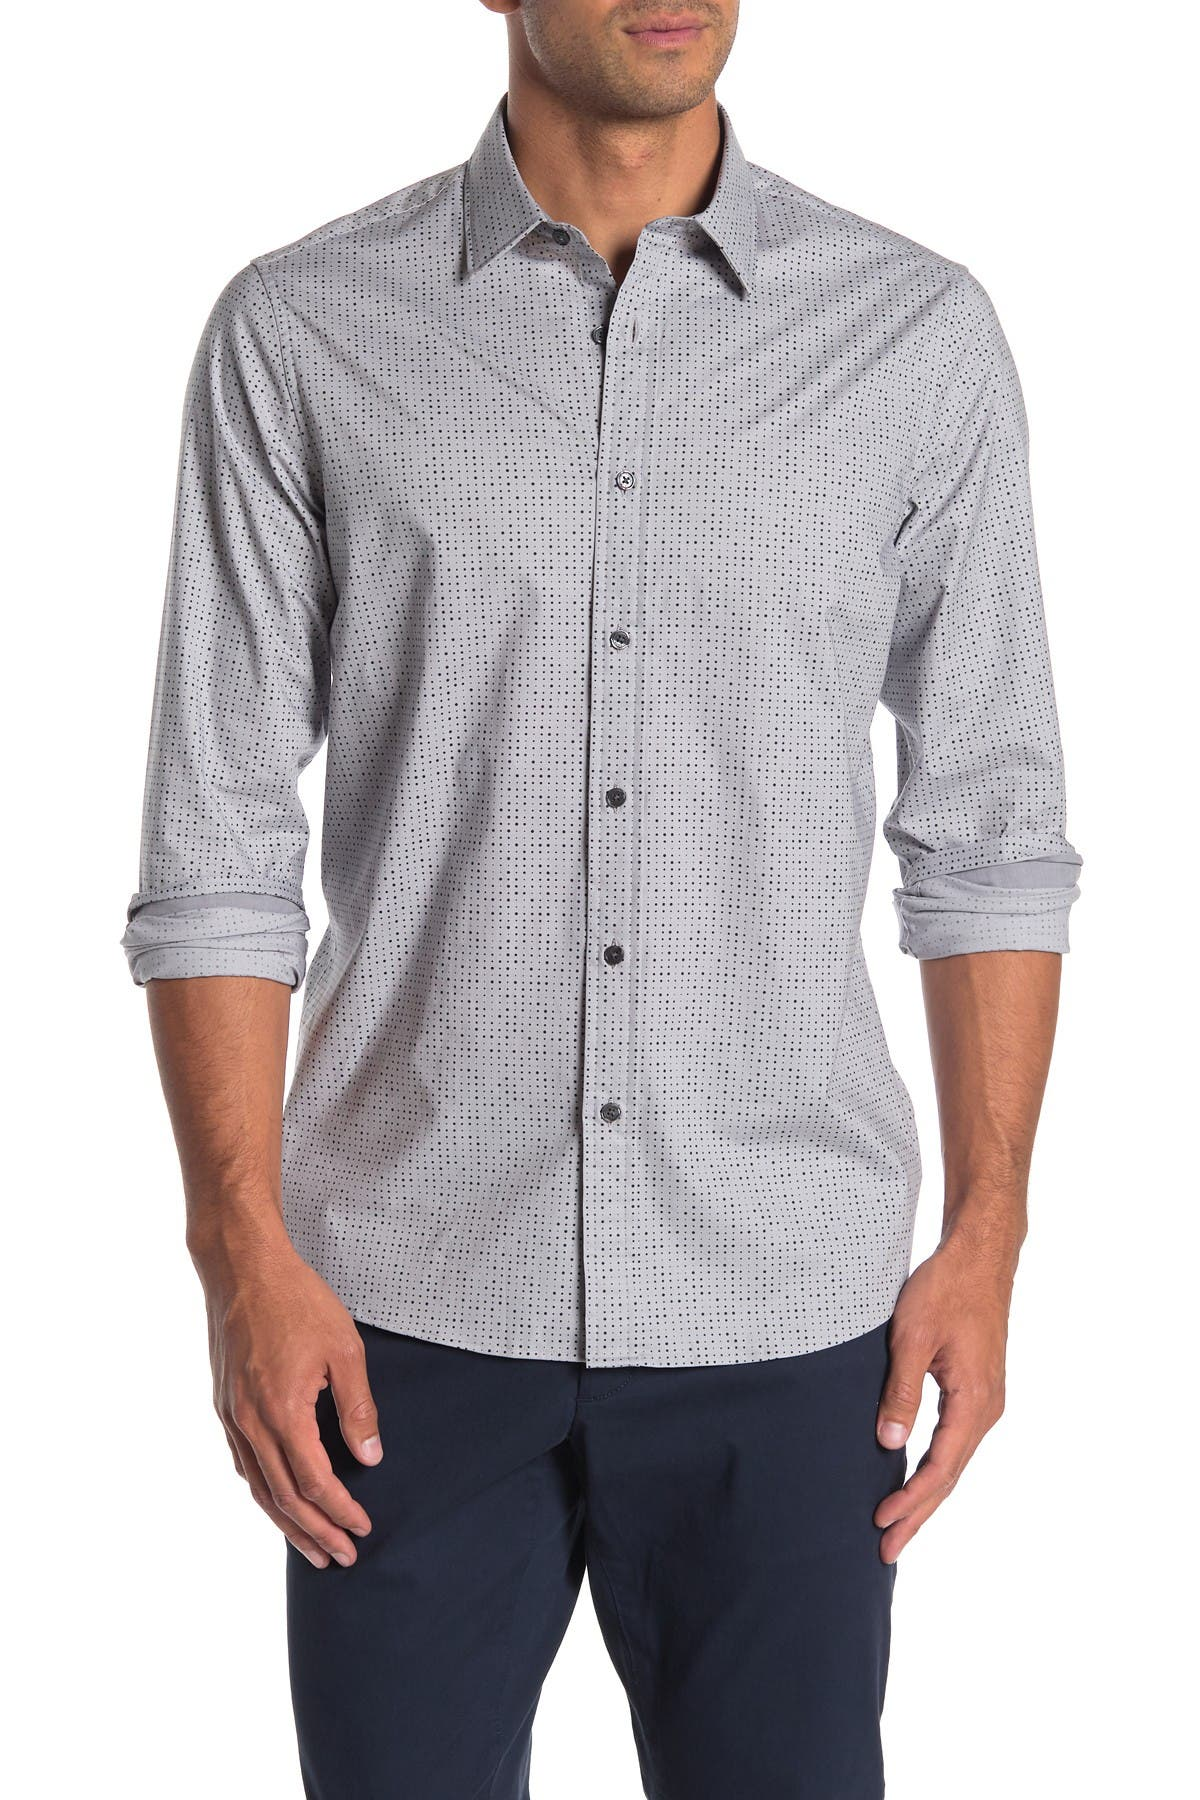 Image of Michael Kors Melange Dotted Long Sleeve Classic Fit Shirt